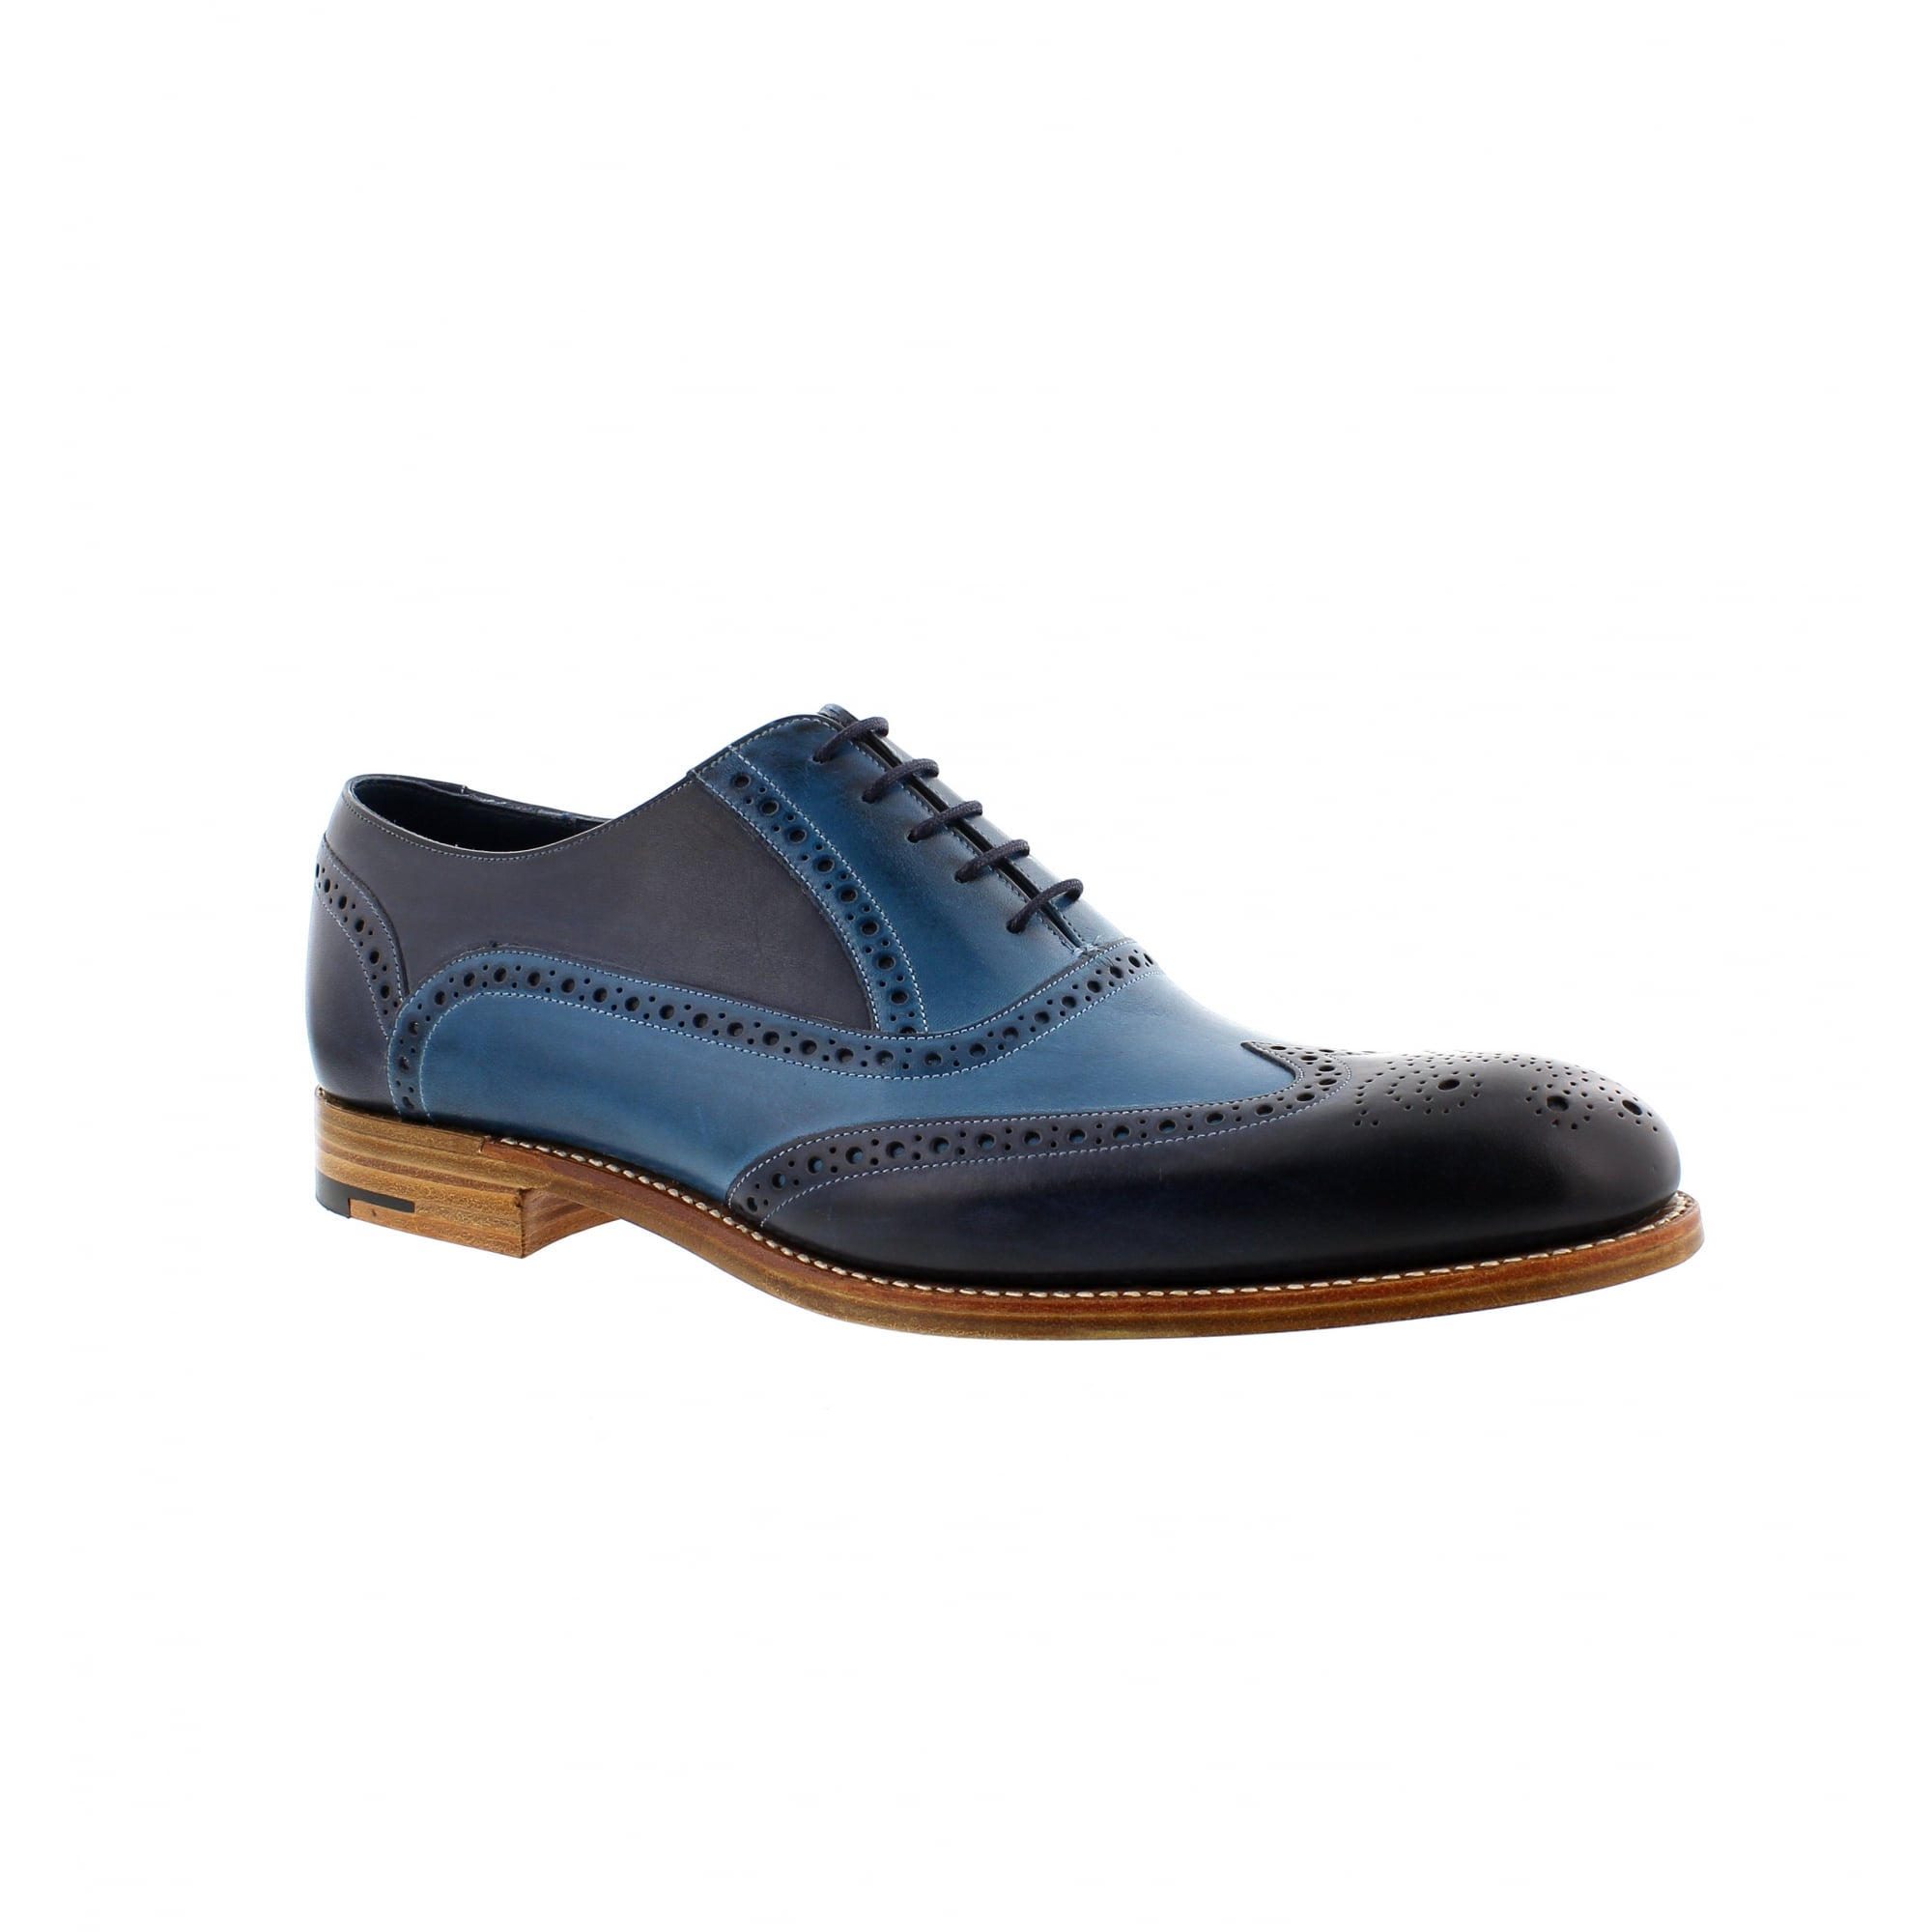 85c228ed Barker Valiant F | 4178FW20 - Mens from Rogerson Shoes UK